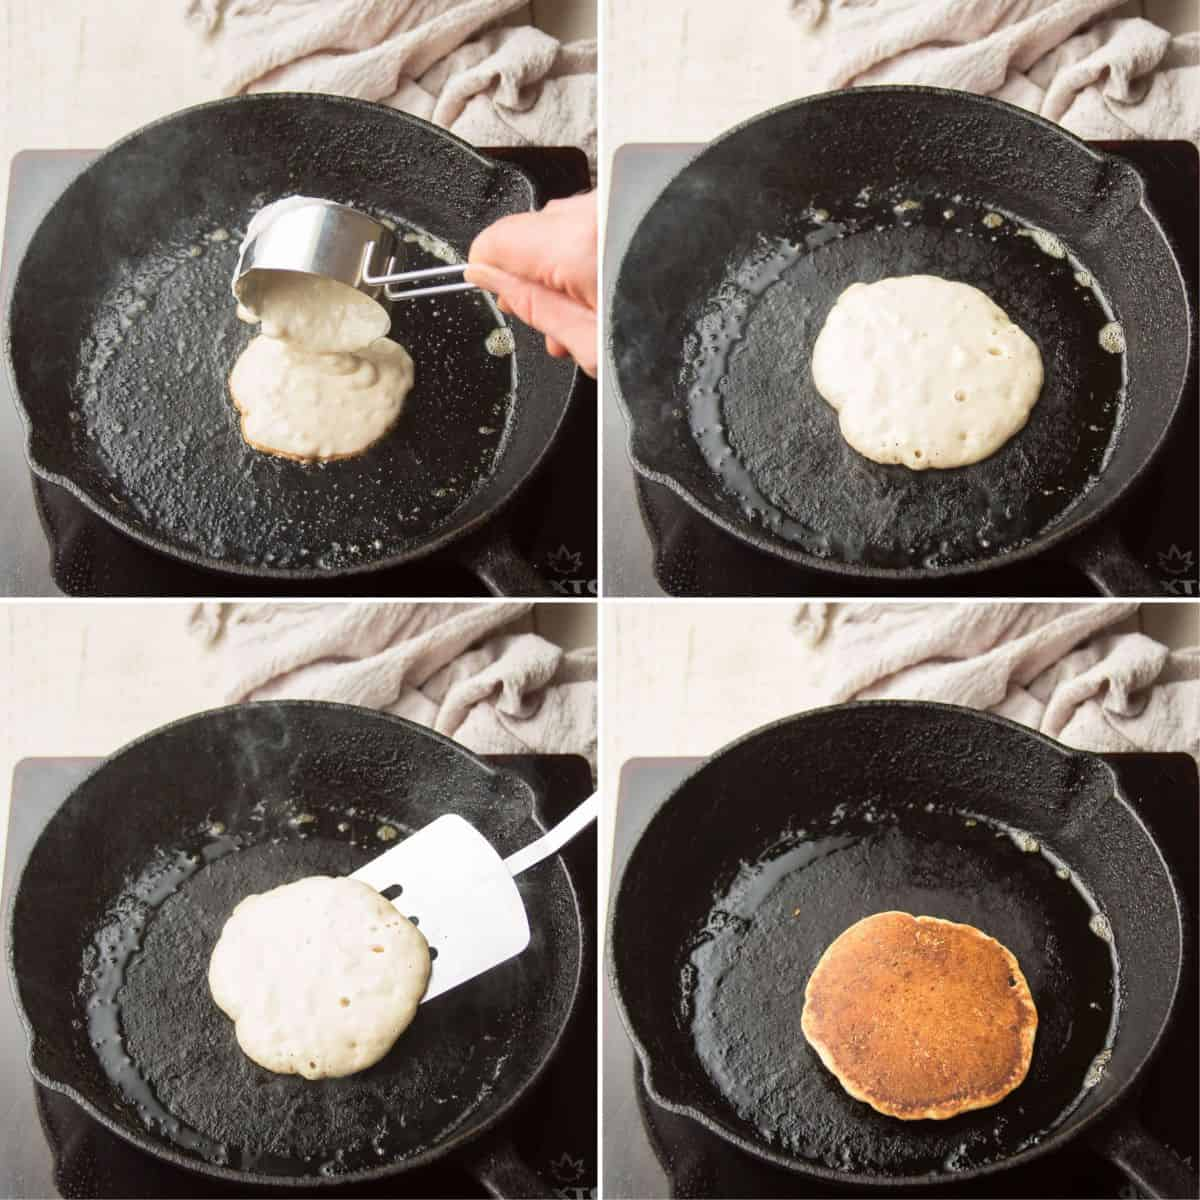 Collage Showing 4 Stages of a Vegan Pancake Cooking in a Skillet